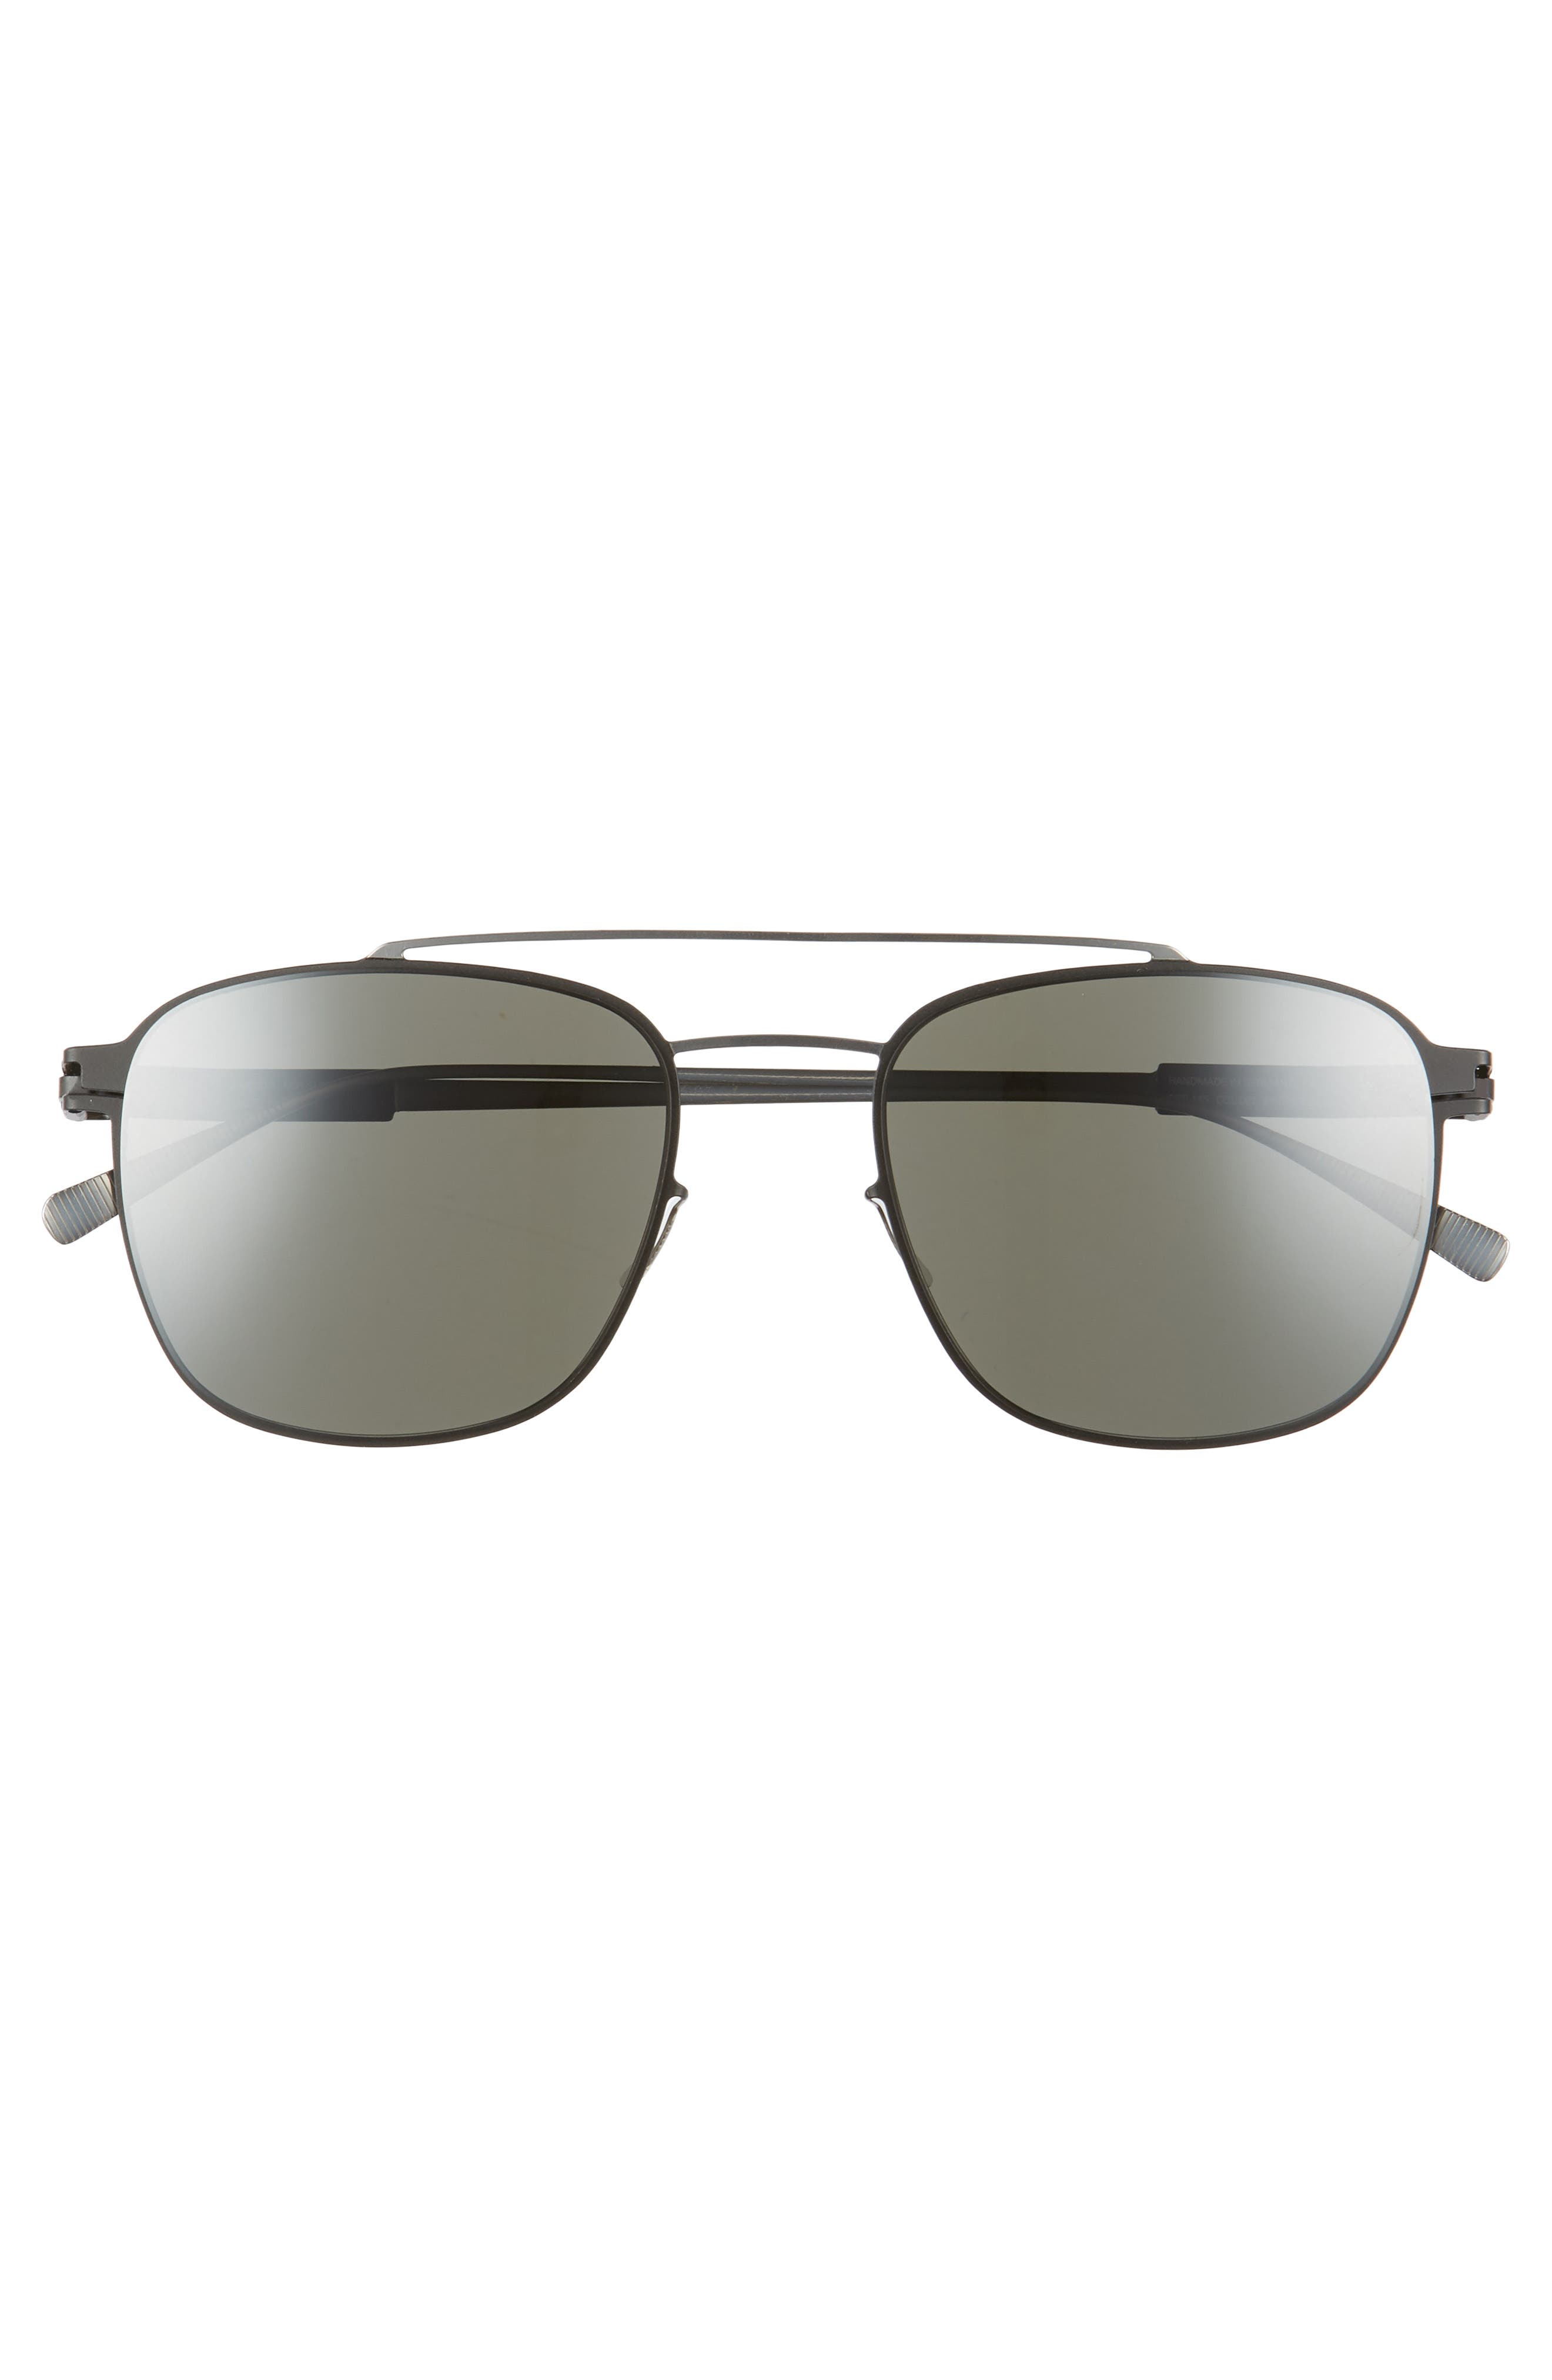 Hugh 52mm Mirrored Sunglasses,                             Alternate thumbnail 2, color,